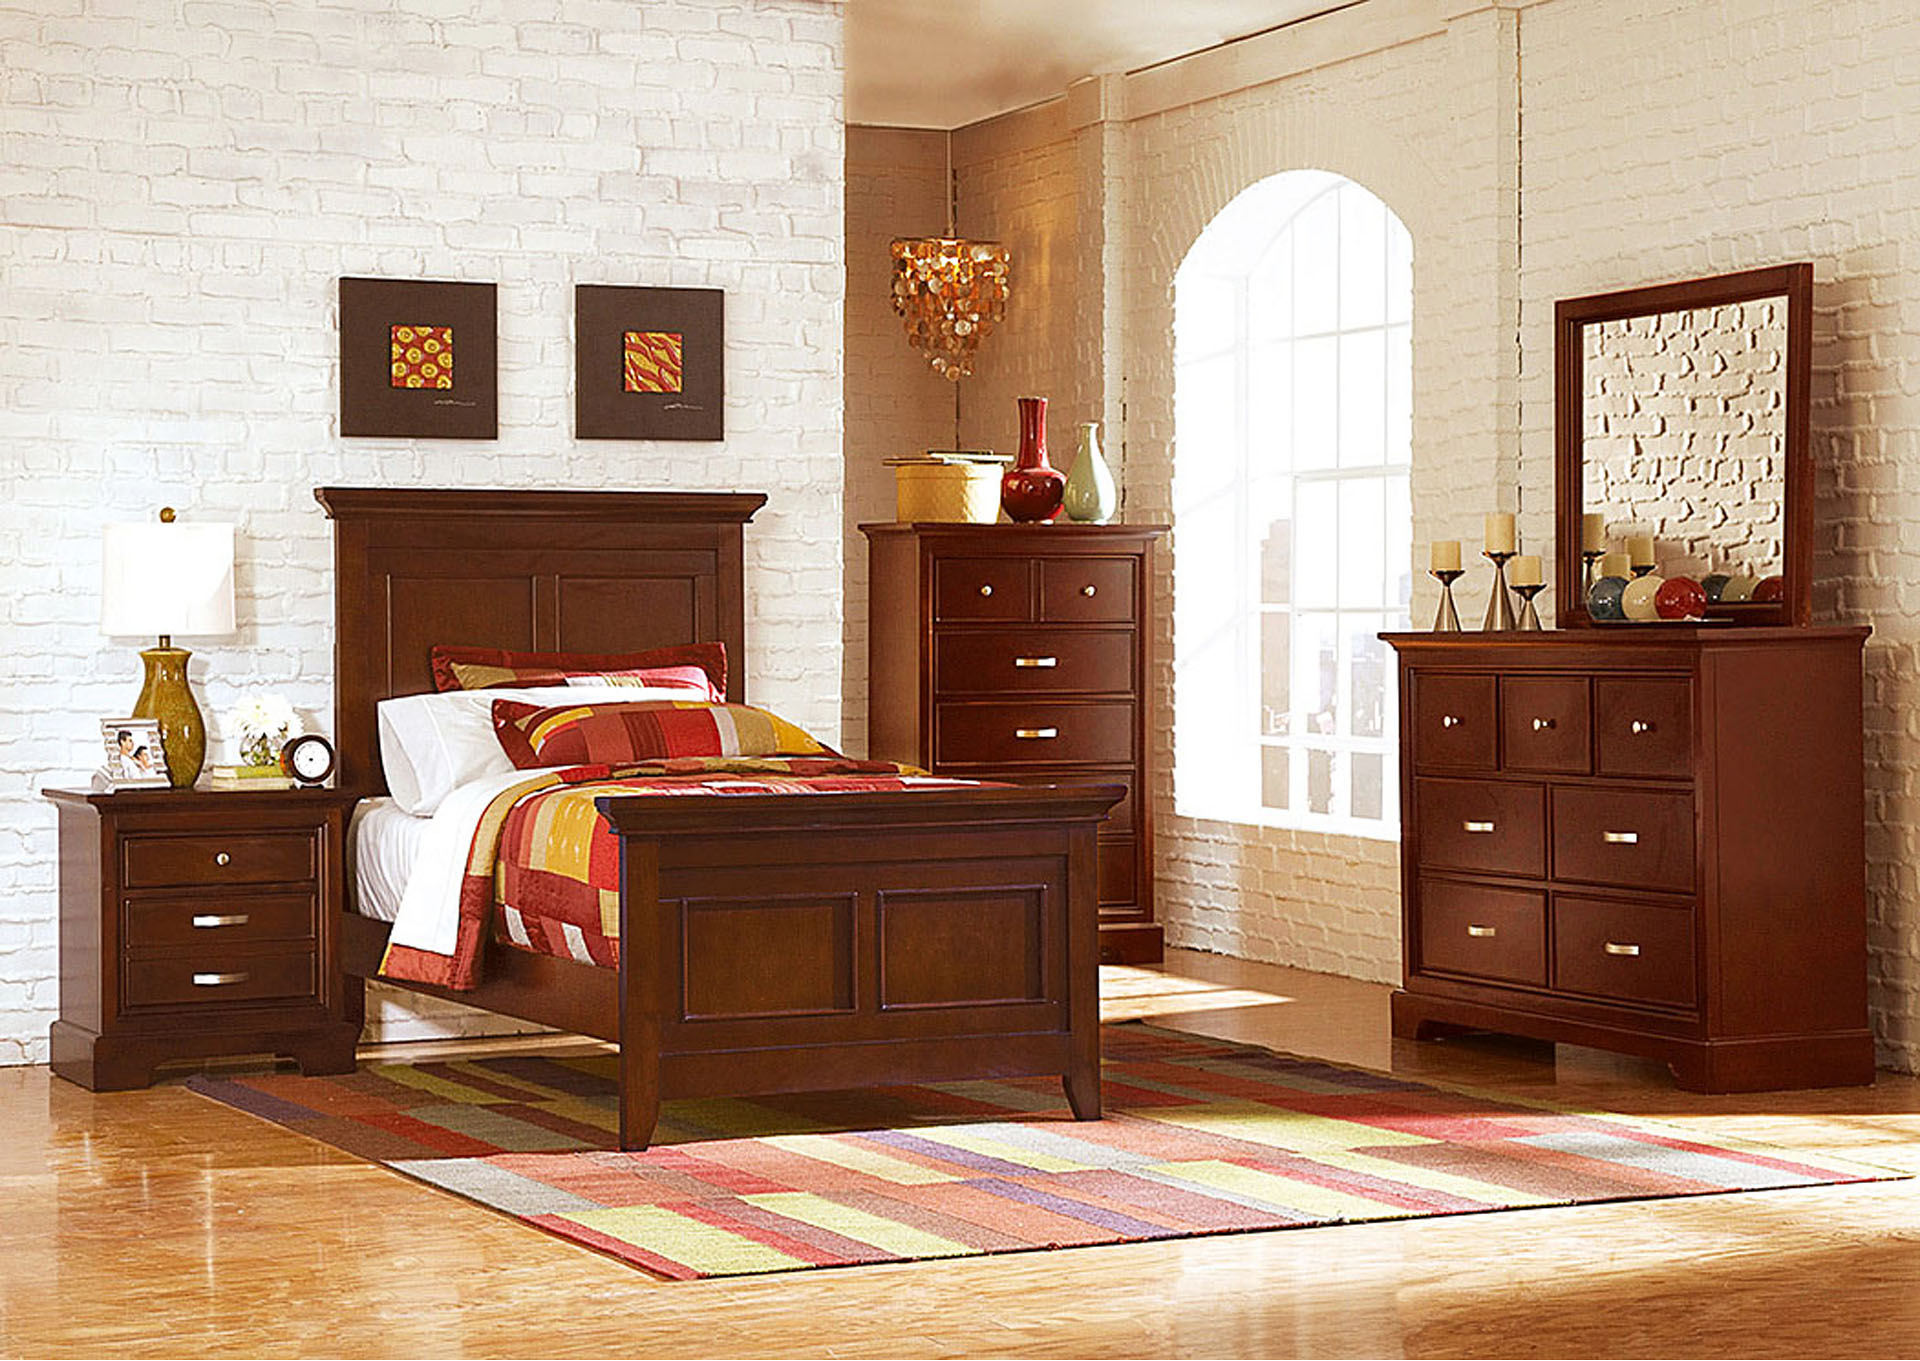 Glamour Espresso Twin Panel Bed w/ Dresser, Mirror, Drawer Chest and Nightstand,Homelegance